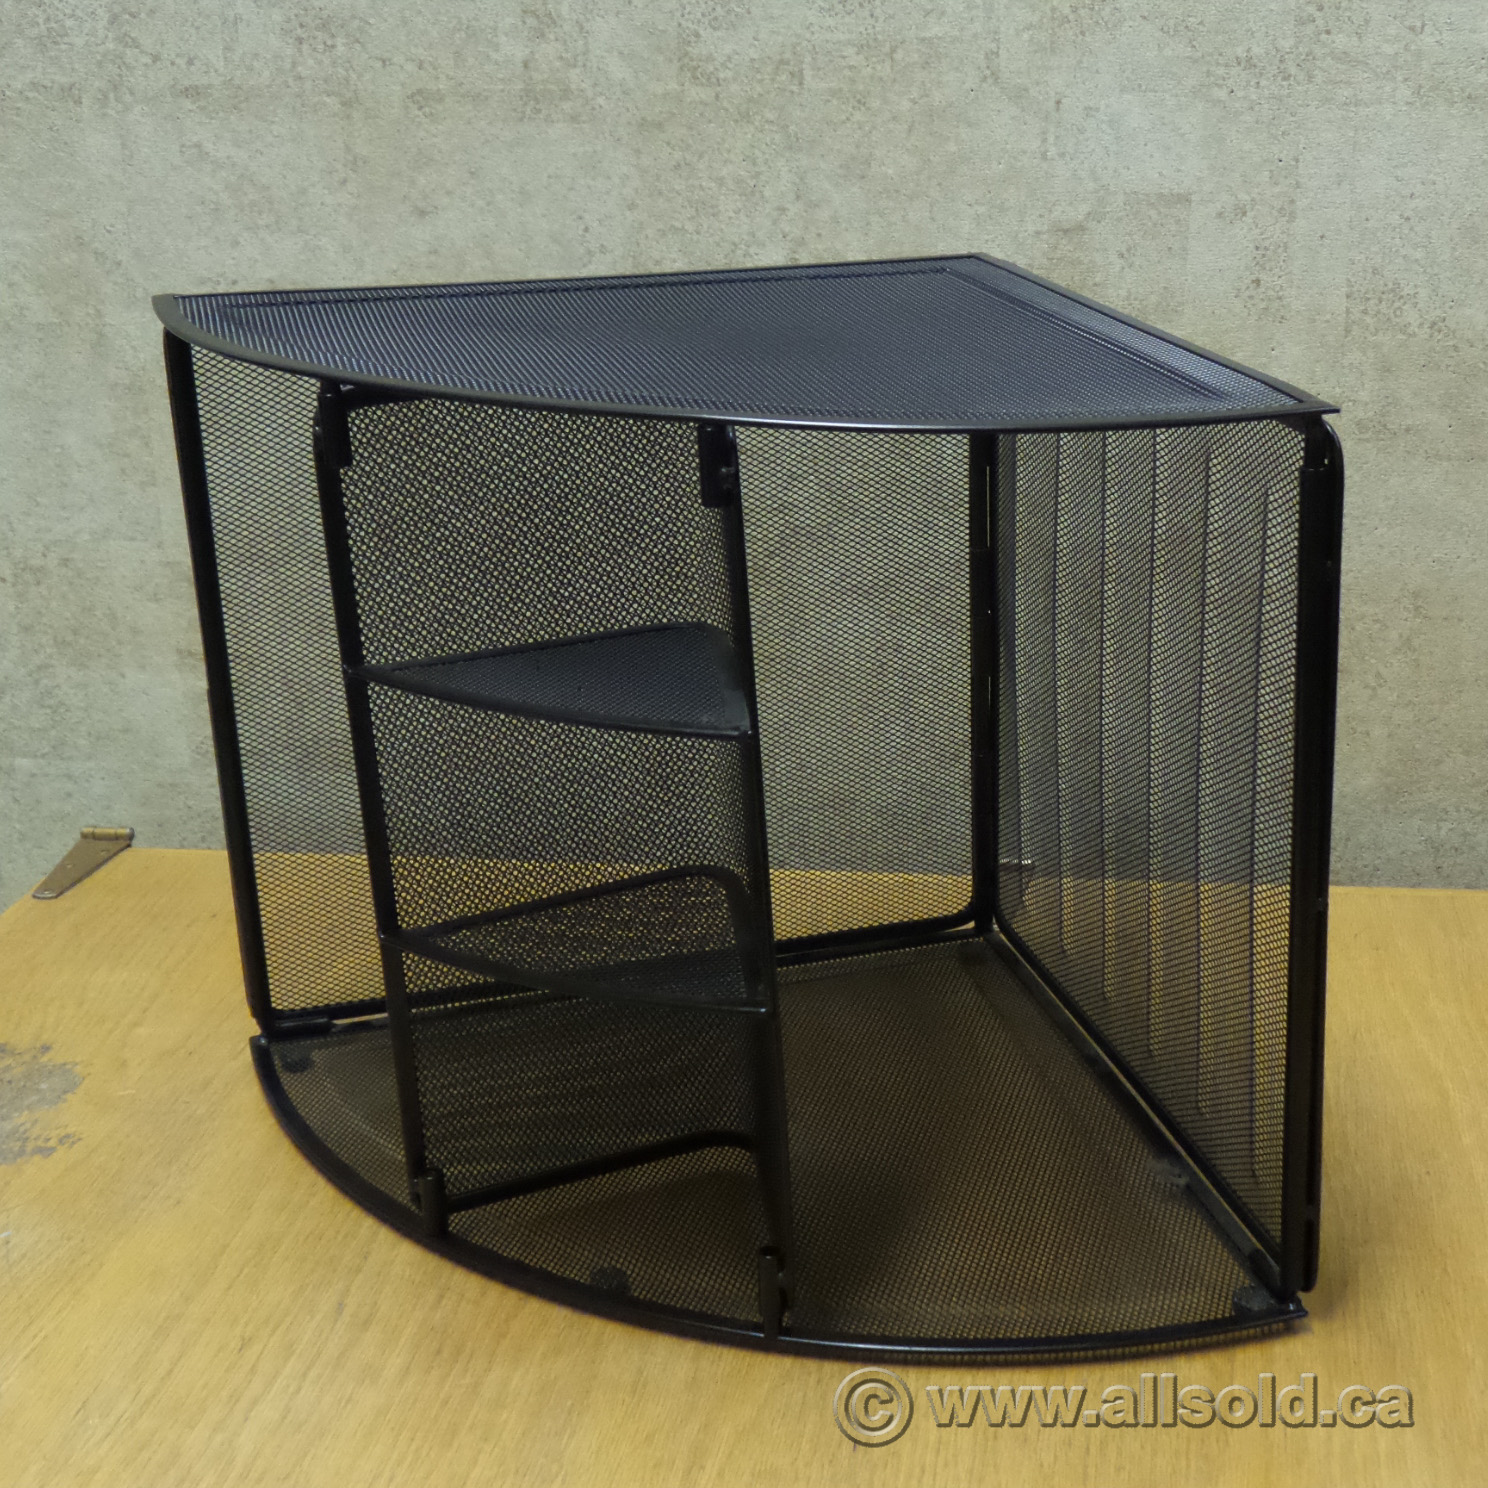 Rolodex black mesh unique corner desk organizer allsold - Black mesh desk organizer ...